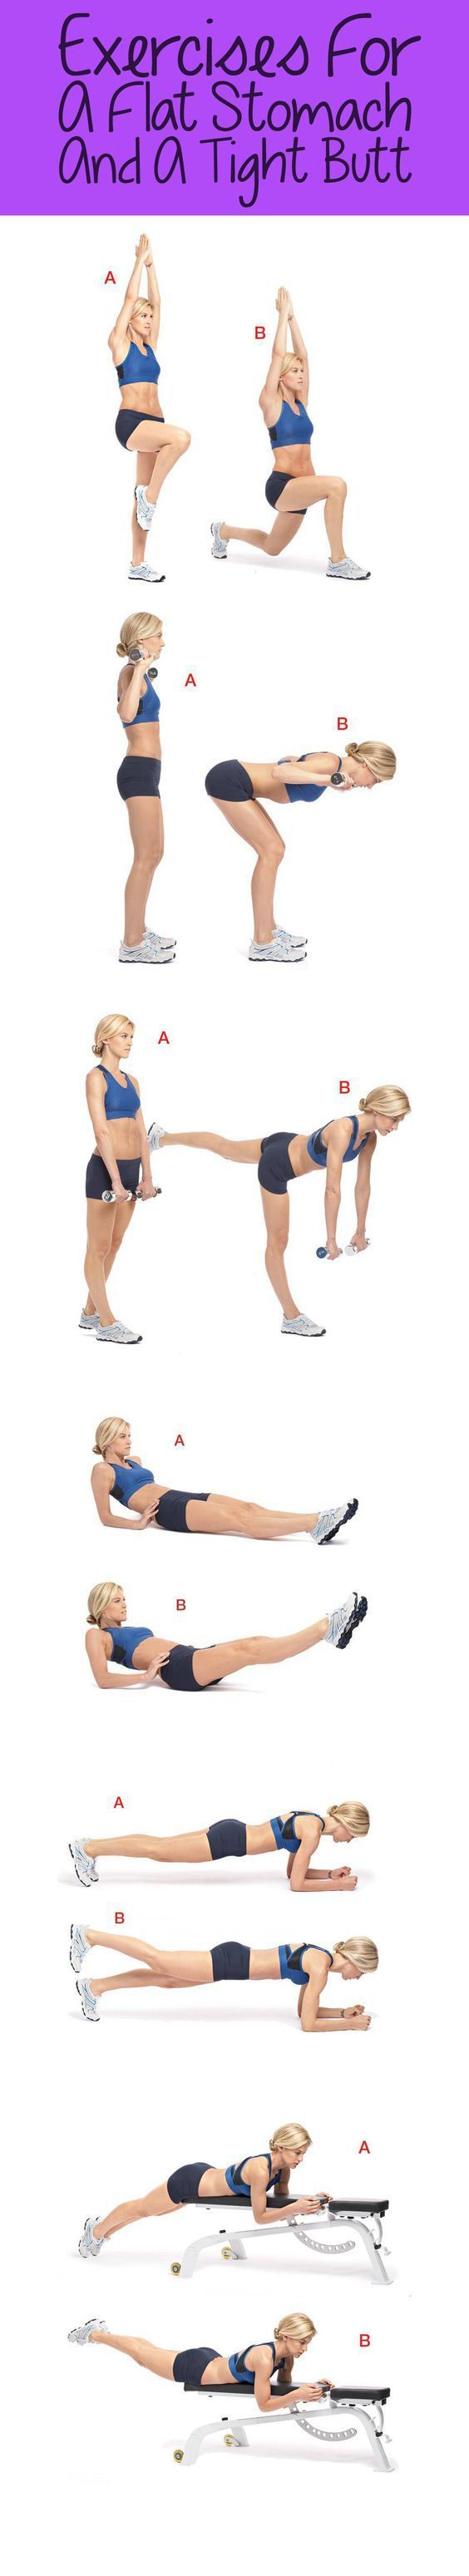 exercises for a flat stomach and a tight butt #weightloss #loseweight #weightlossworkout #buttworkout #exercise #strong #fitness #flatbelly